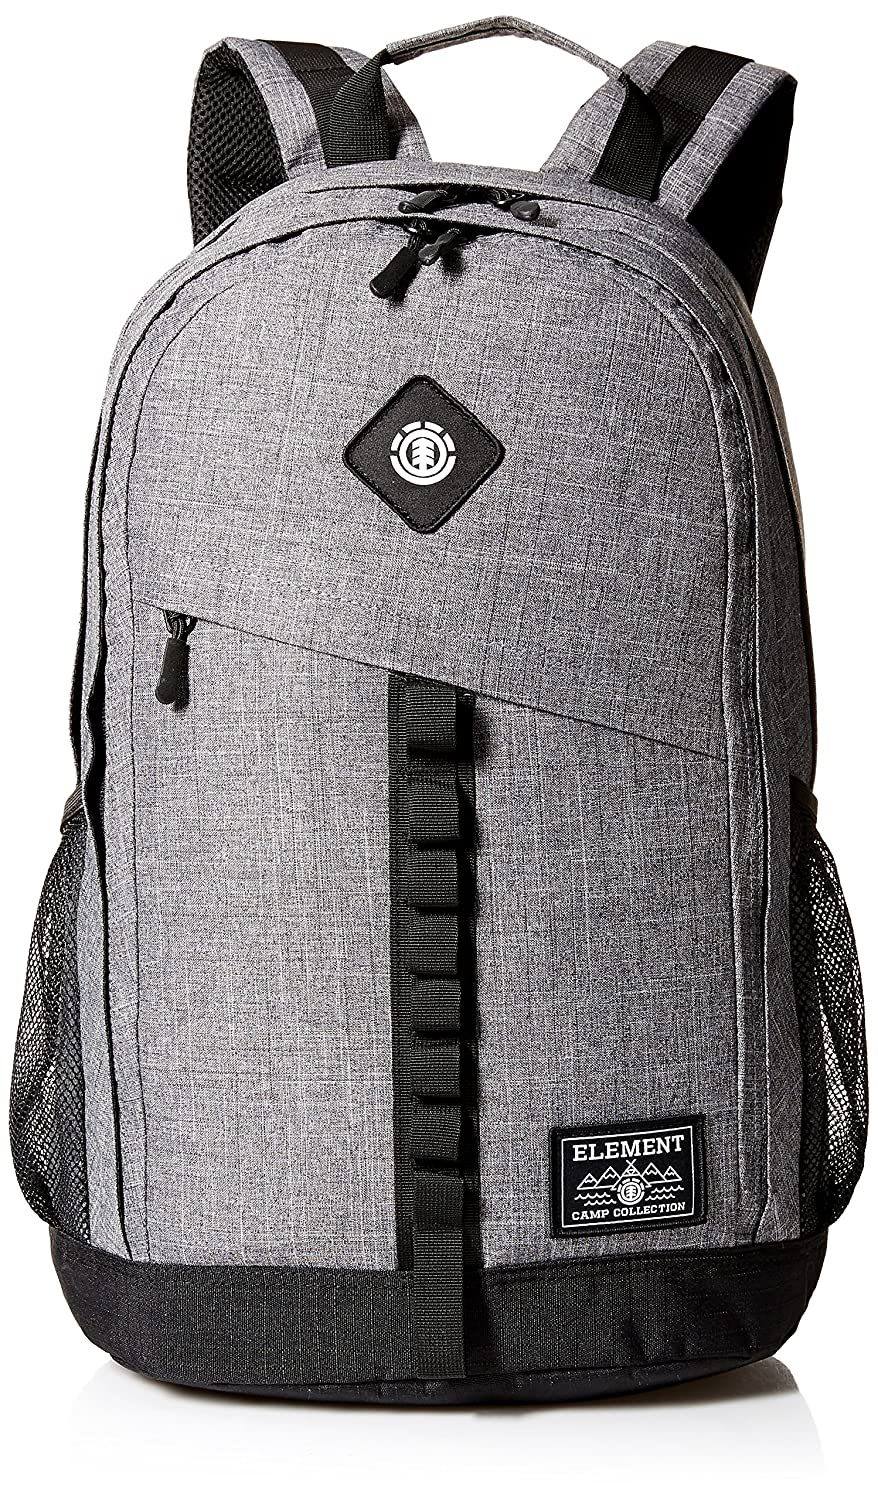 Element Hombres Cypress Backpack With Laptop Sleeve Mochilas - Gris -: Amazon.es: Ropa y accesorios